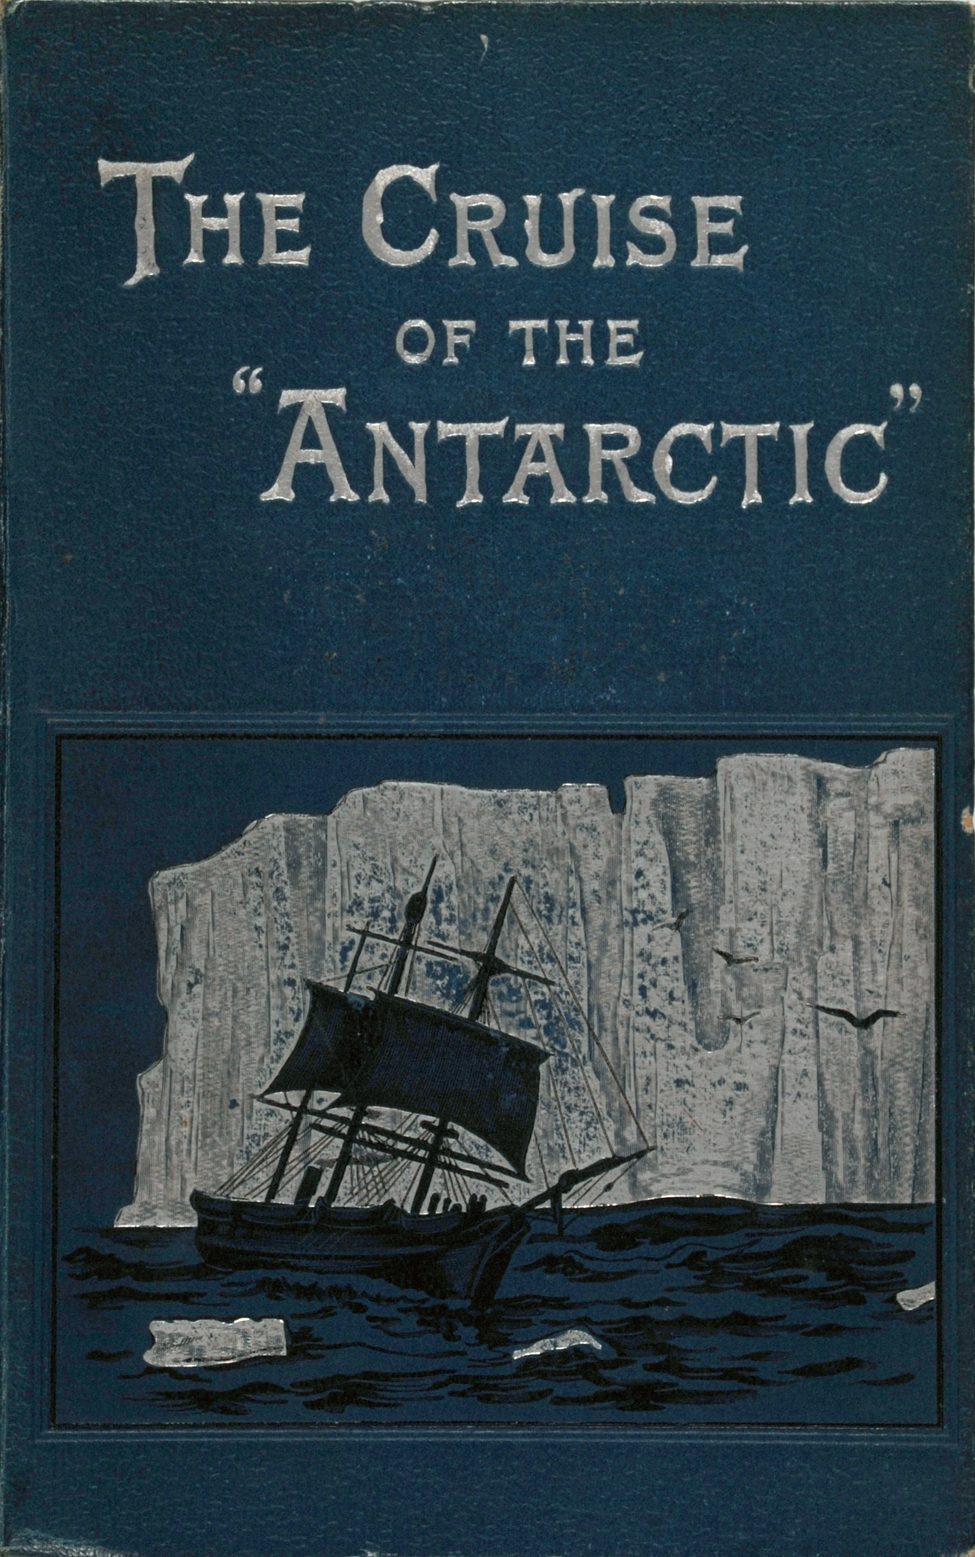 H. J. Bull. <i>The Cruise of the 'Antarctic' to the South Polar Regions</i>. London: Edward Arnold, 1896.